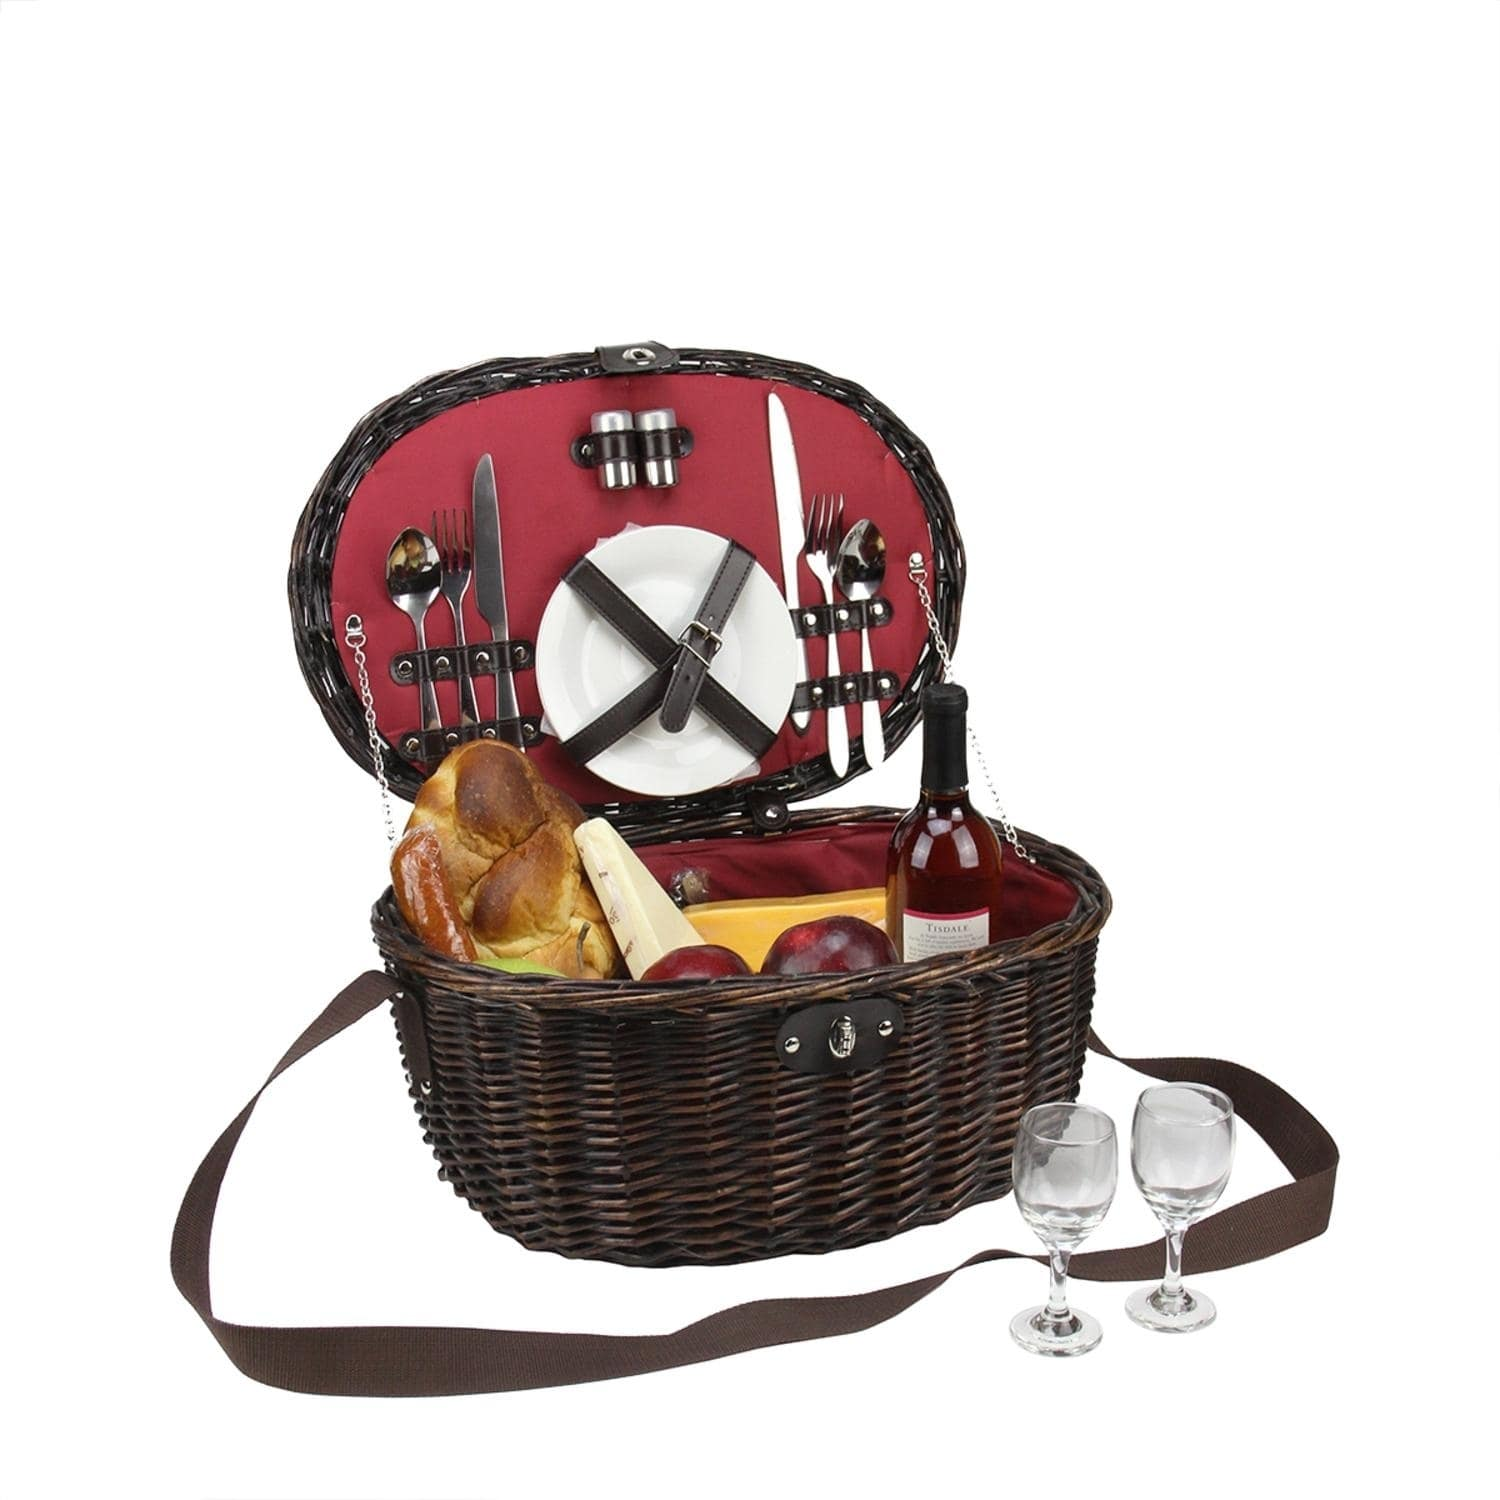 2-Person Hand Woven Red Sateen Chocolate Brown Willow Picnic Basket Set with Accessories